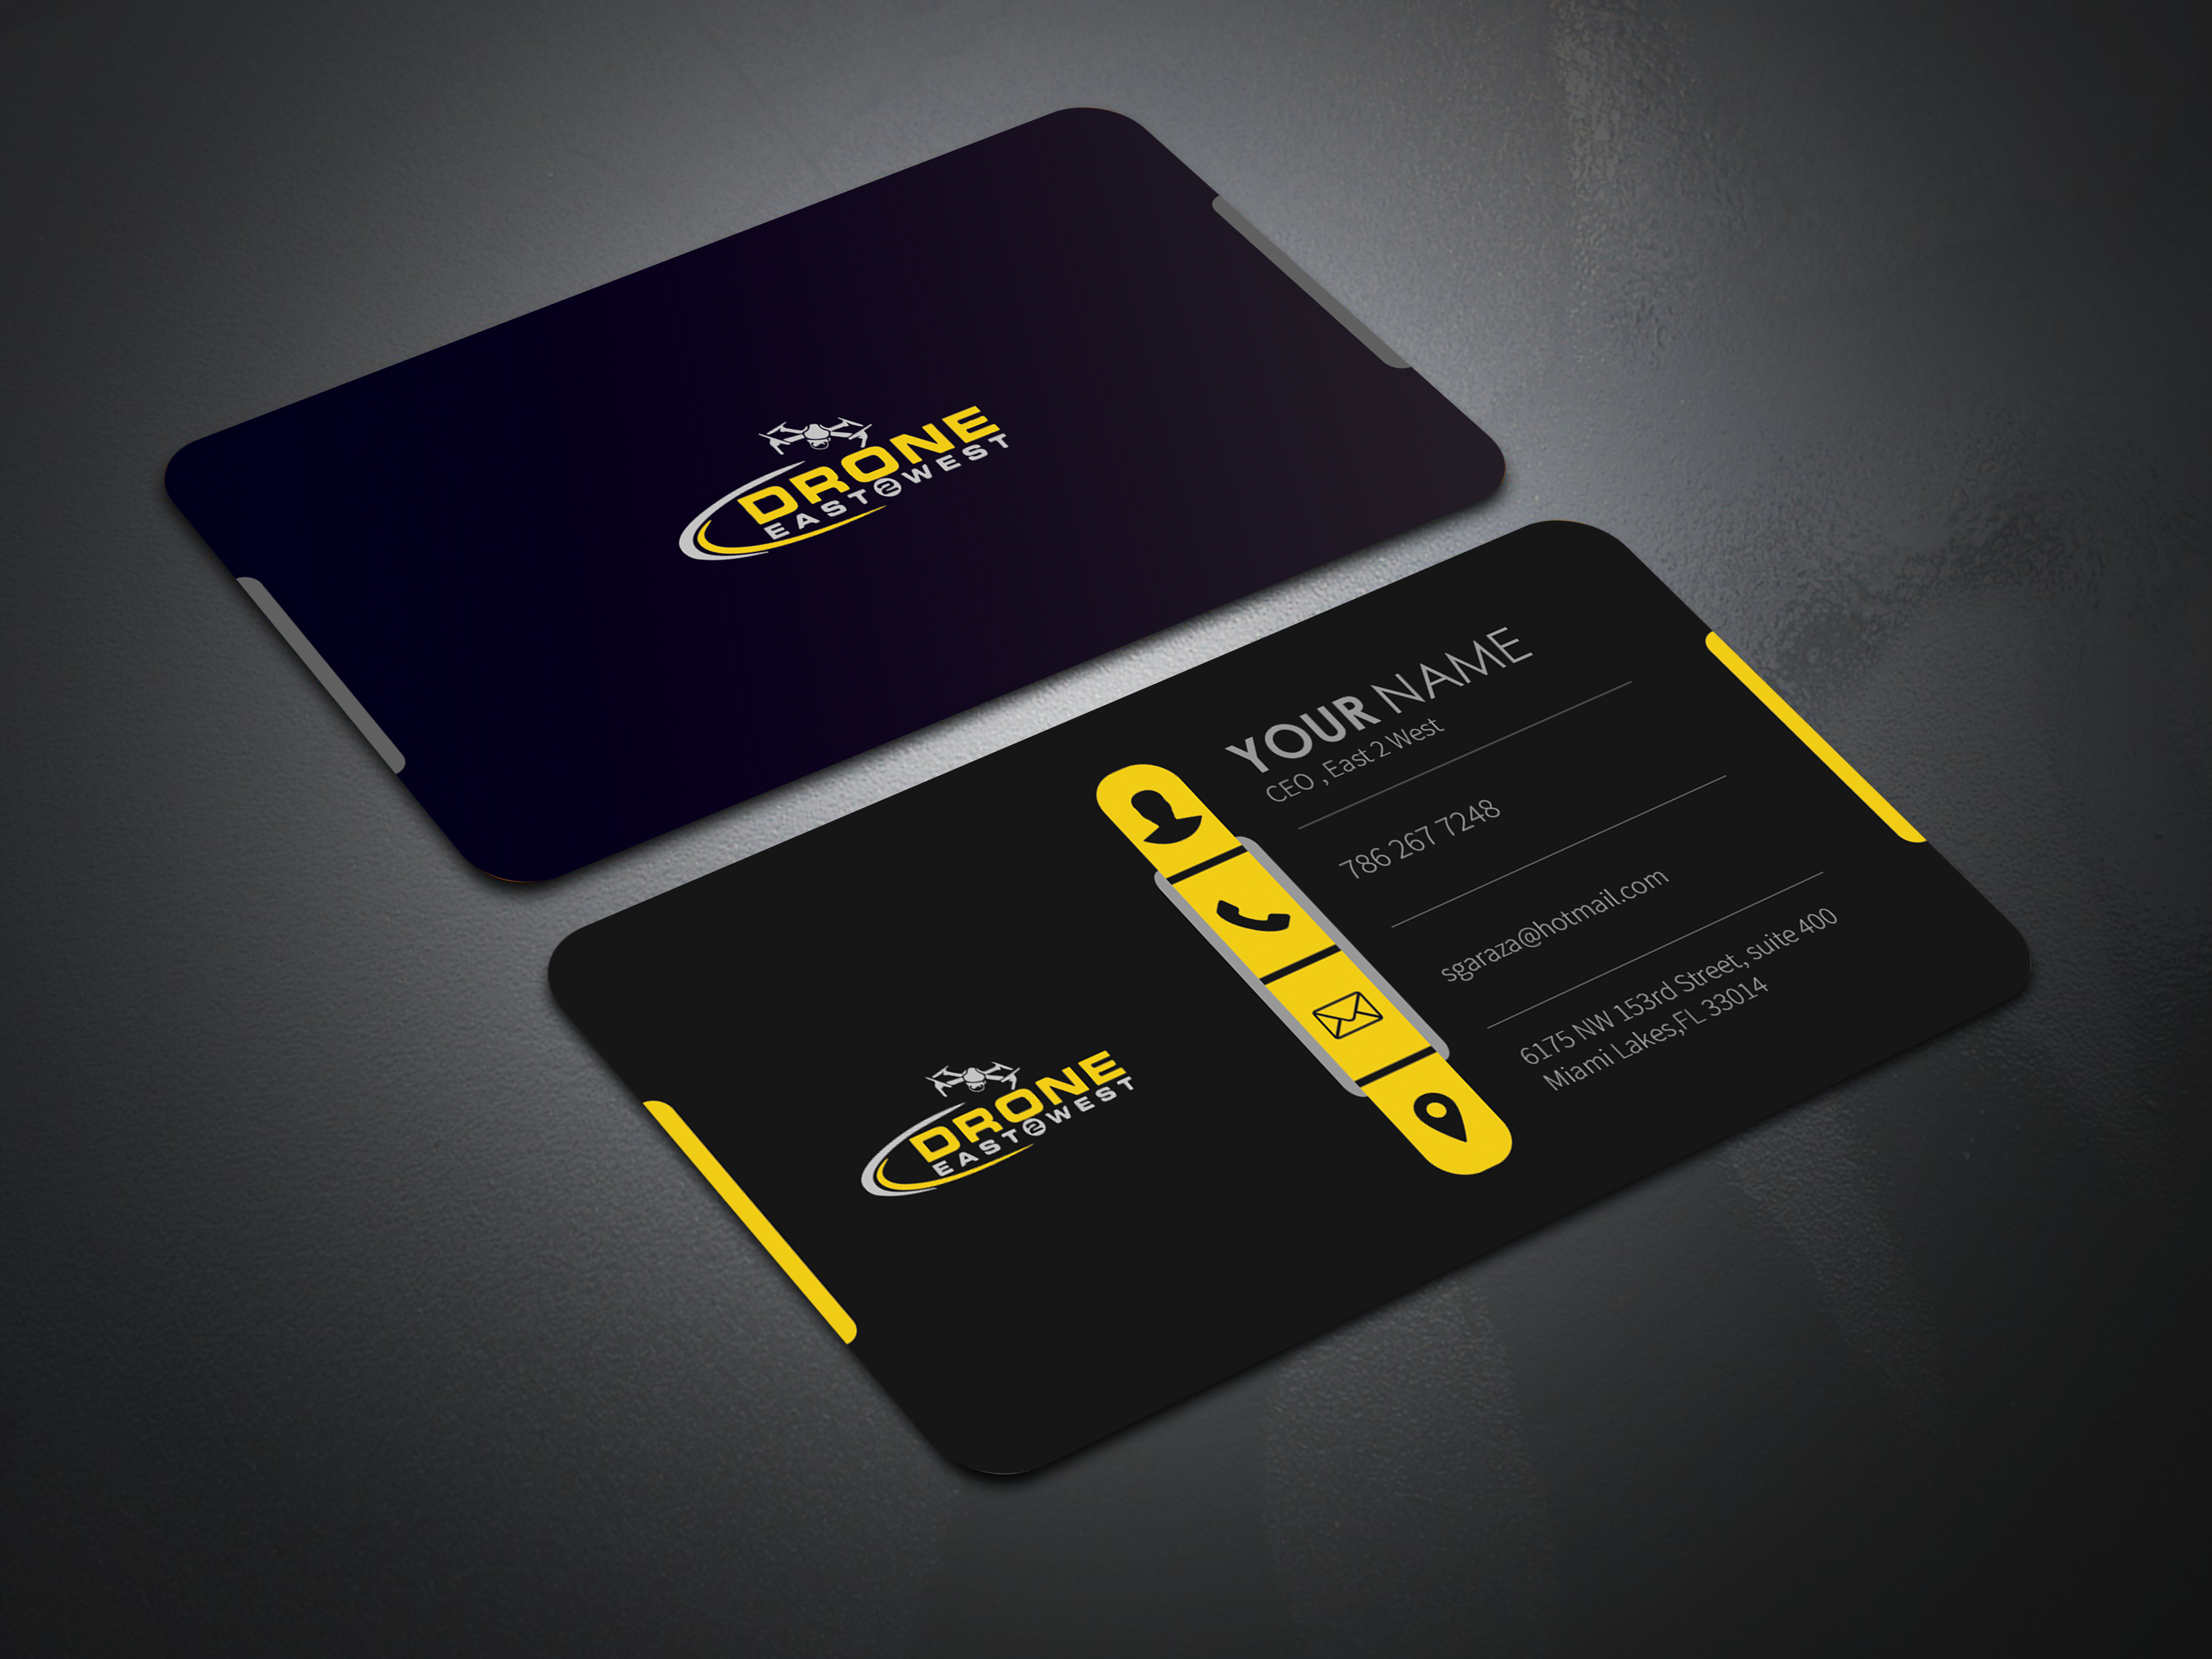 I will design a luxury modern creative and unique business card